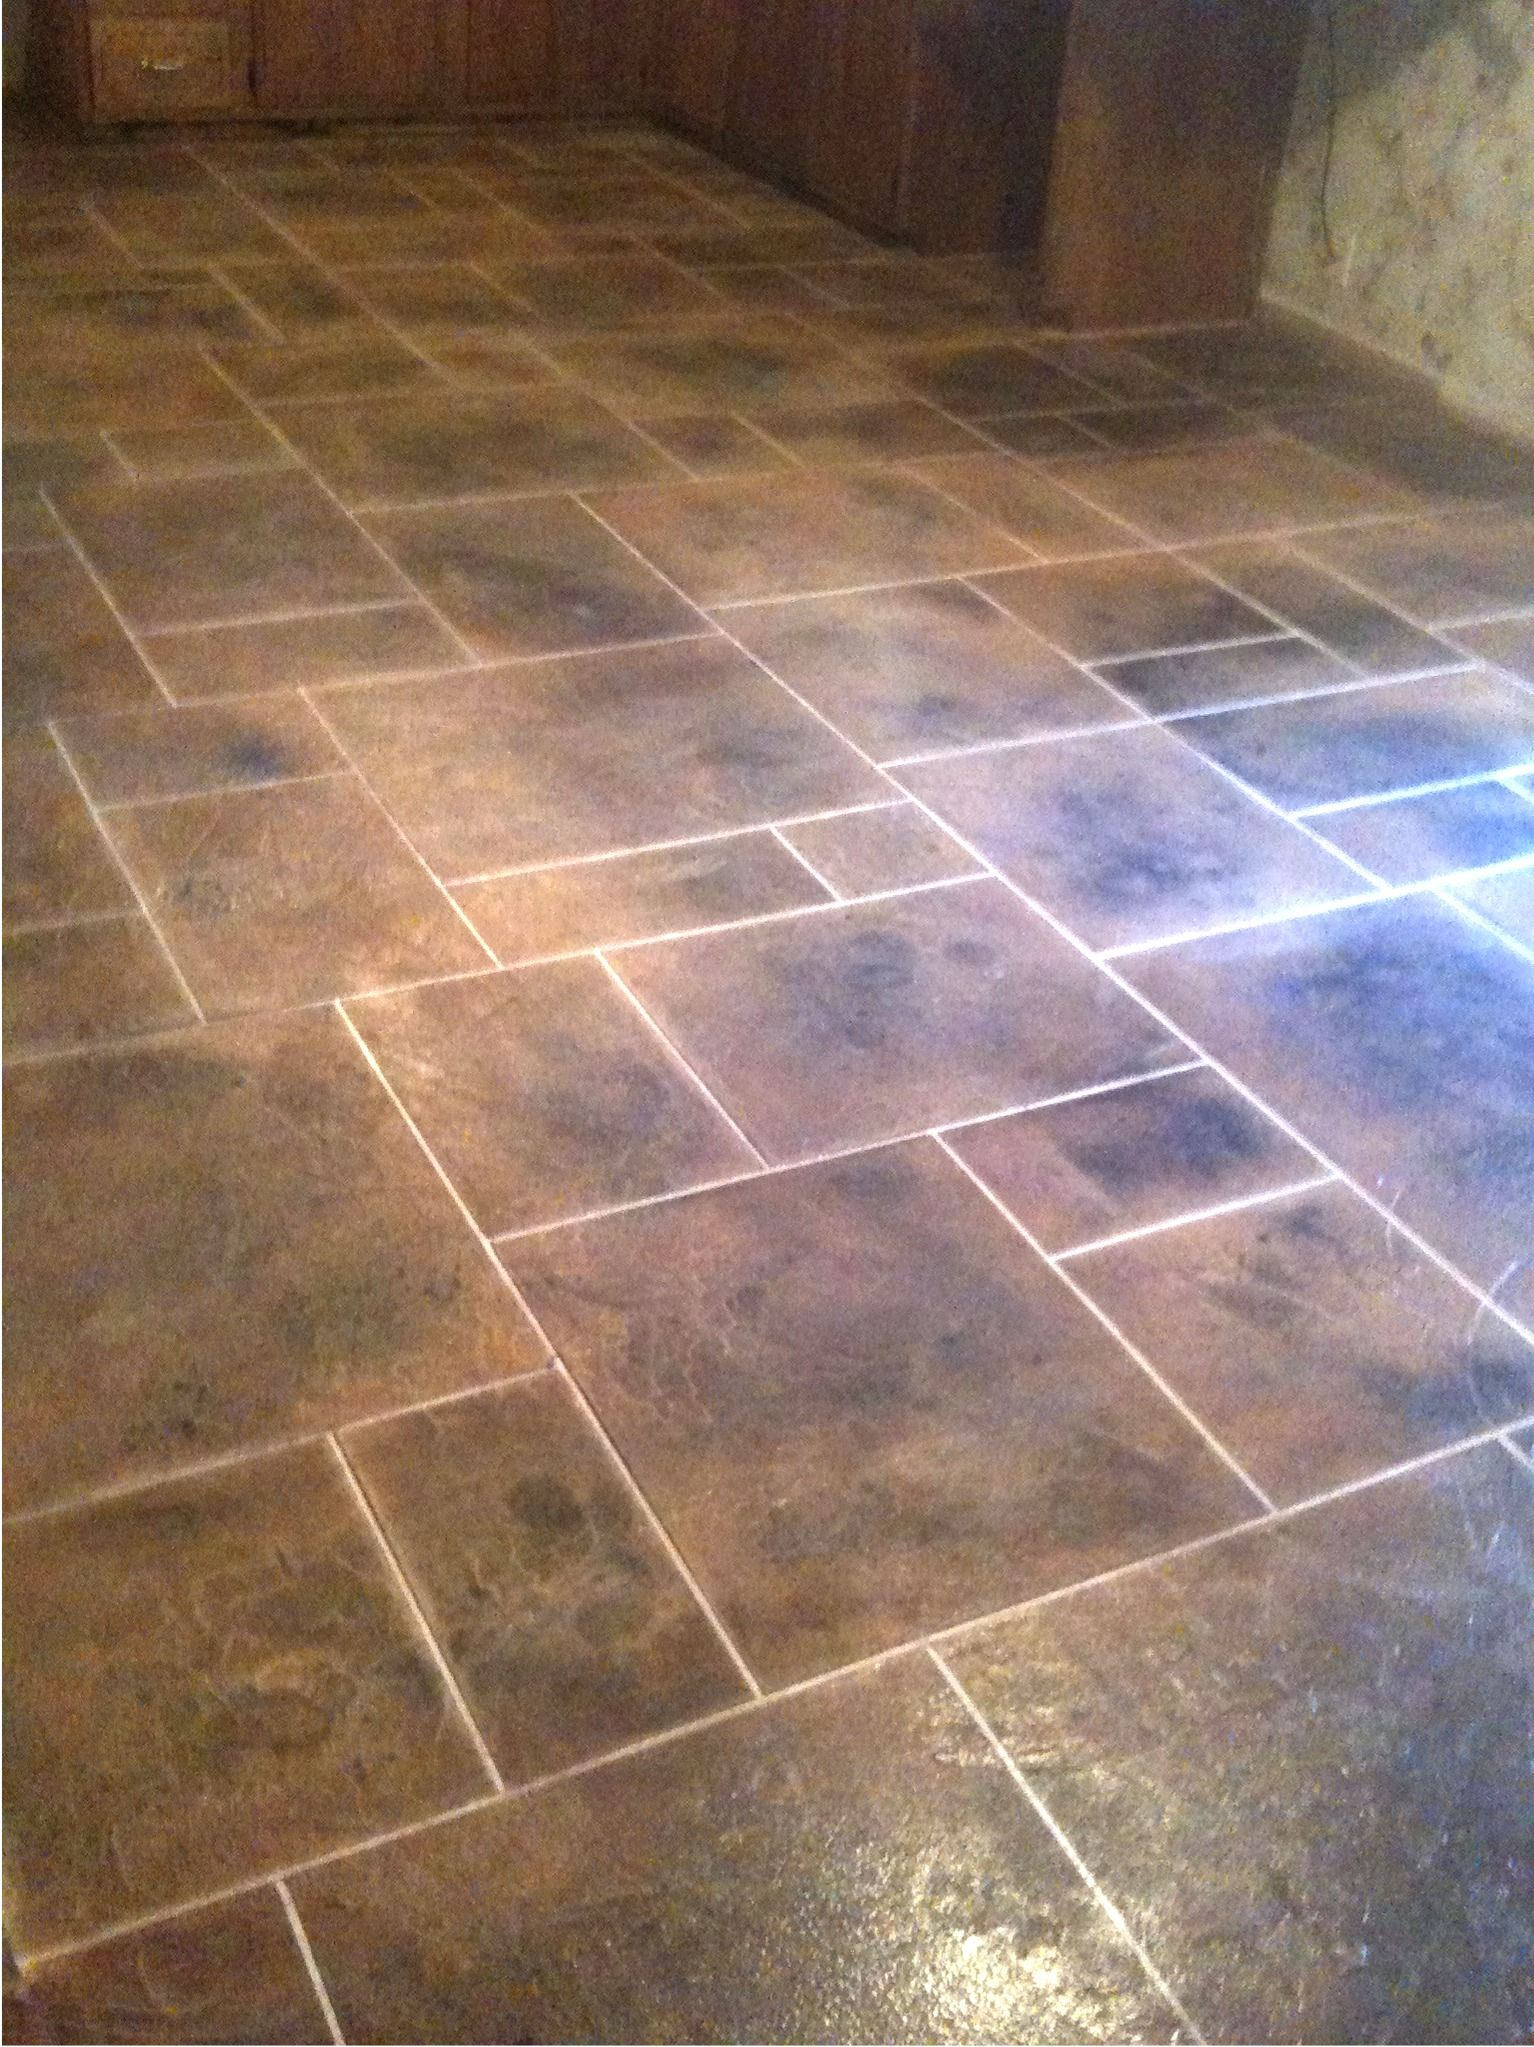 Stone Floor Tiles Kitchen Kitchen Floor Tile Patterns Concrete Overlay Random Pattern